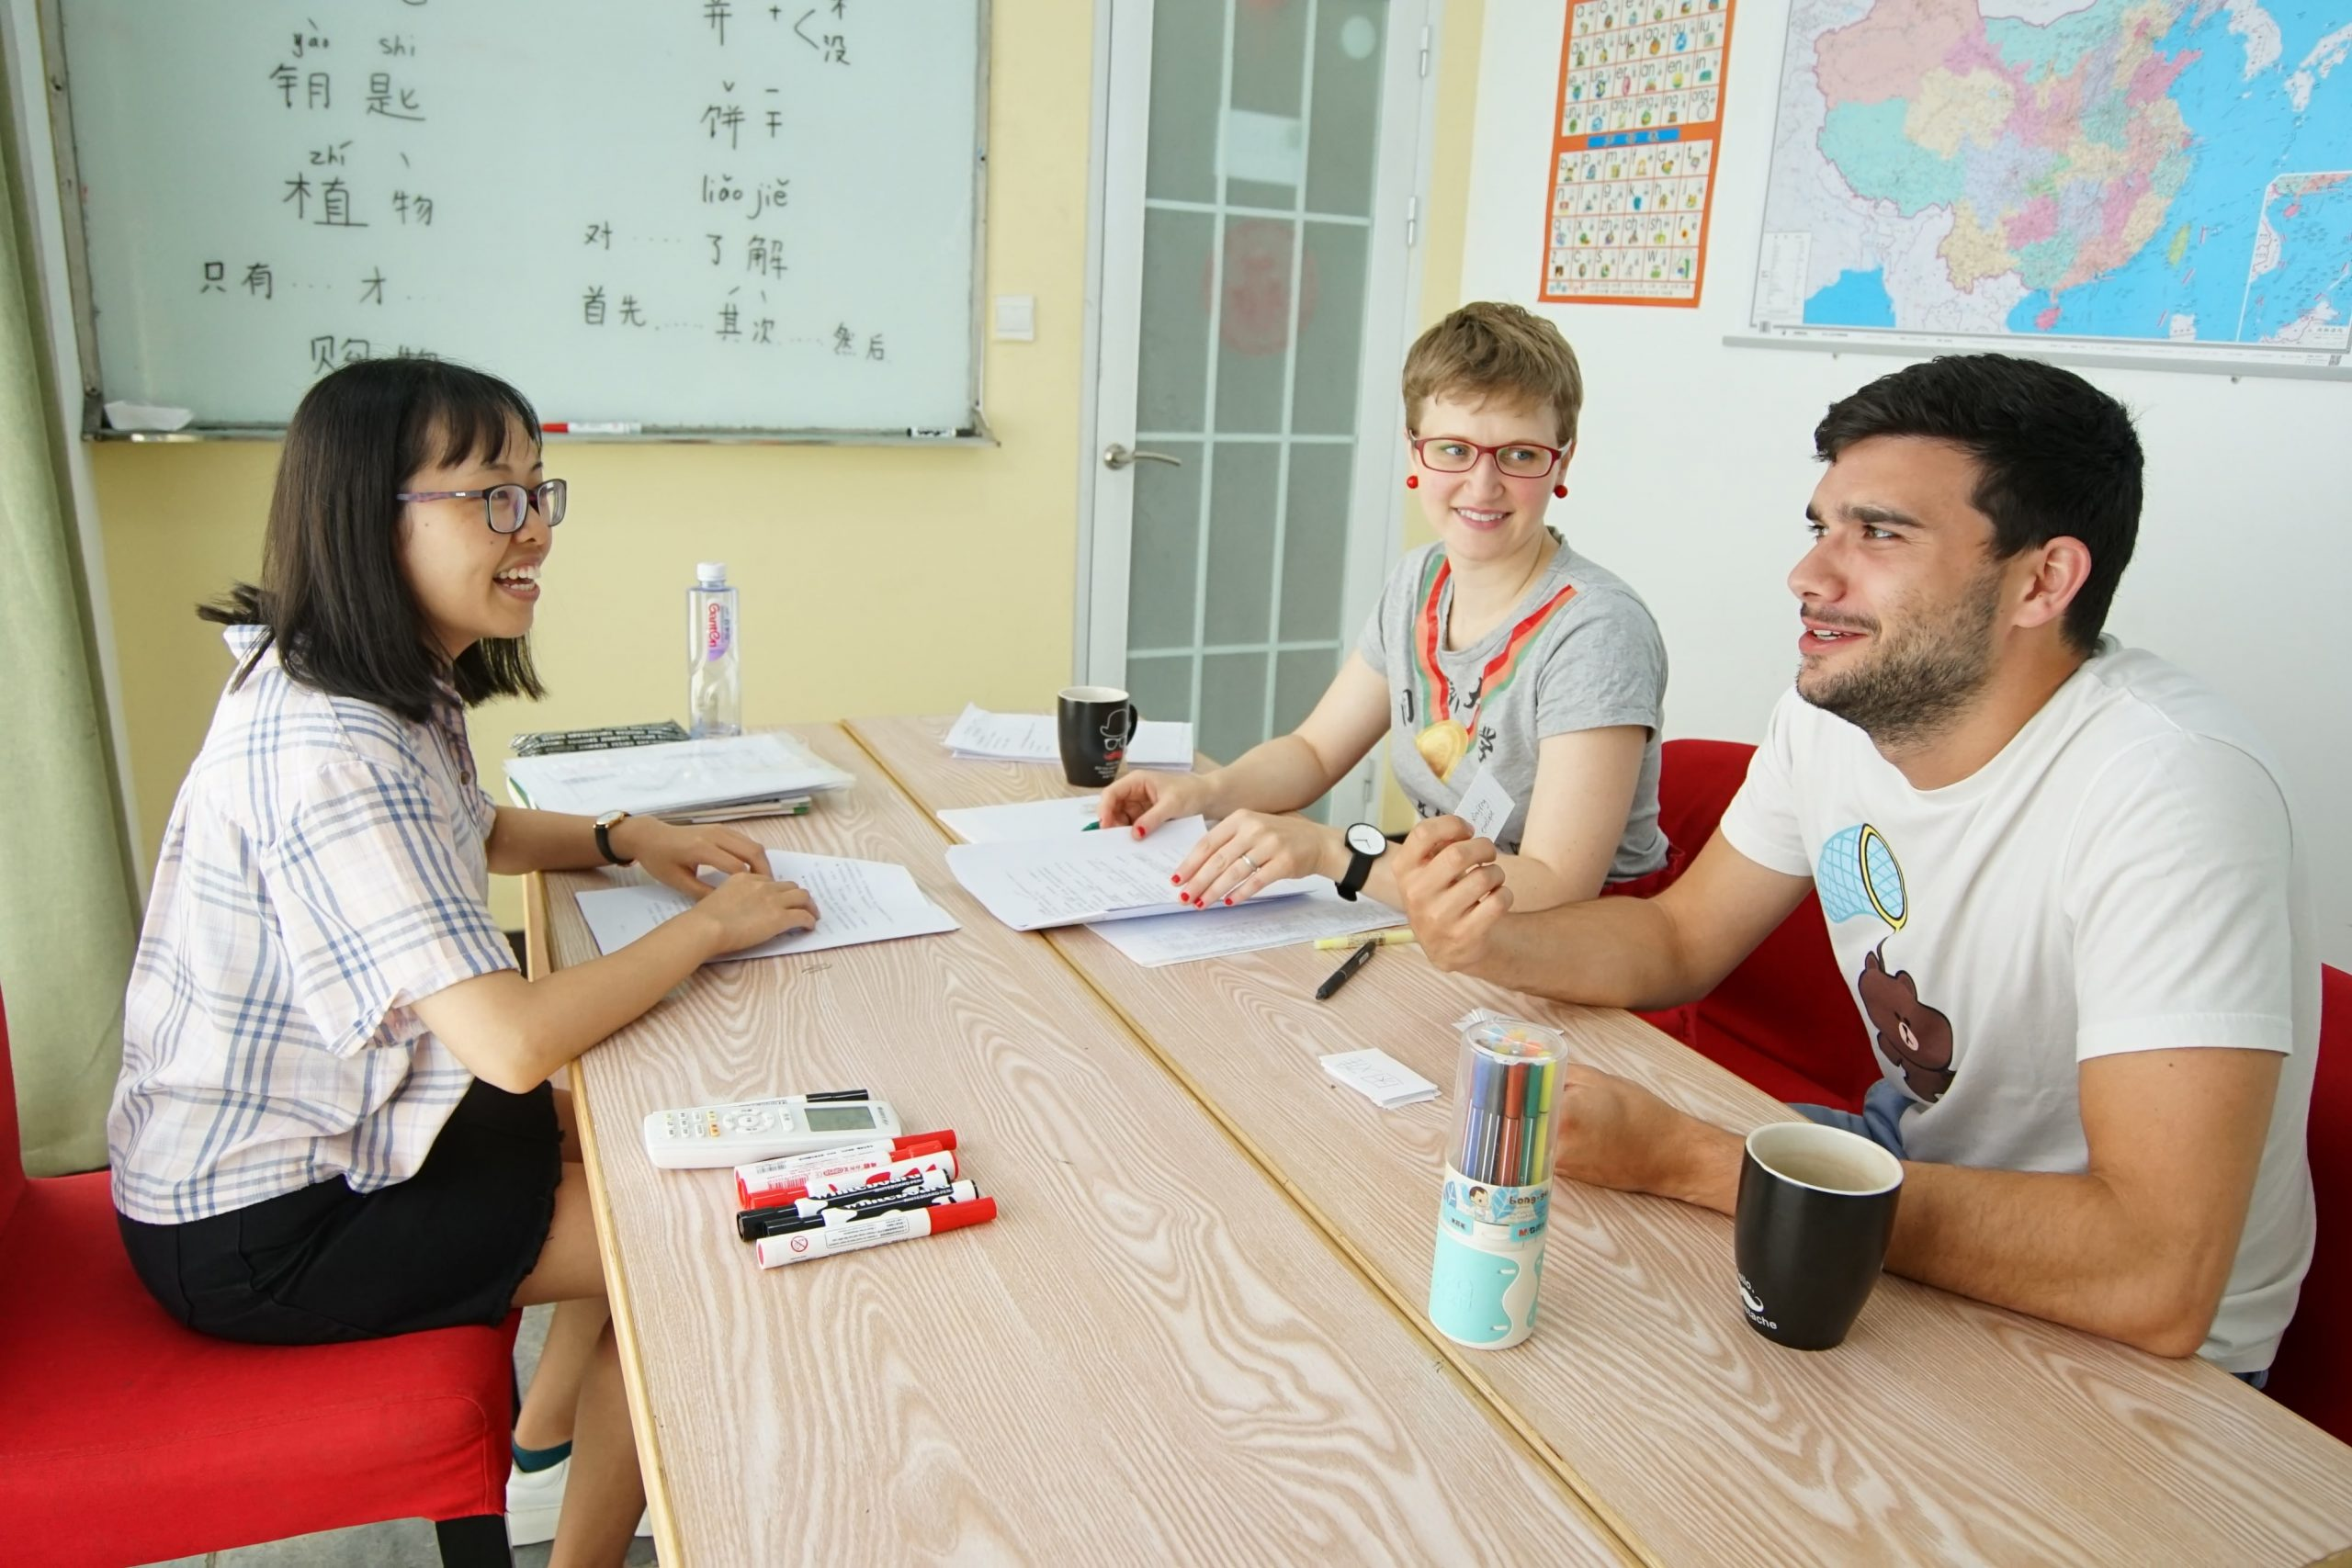 Students in classroom - Intensive Chinese course